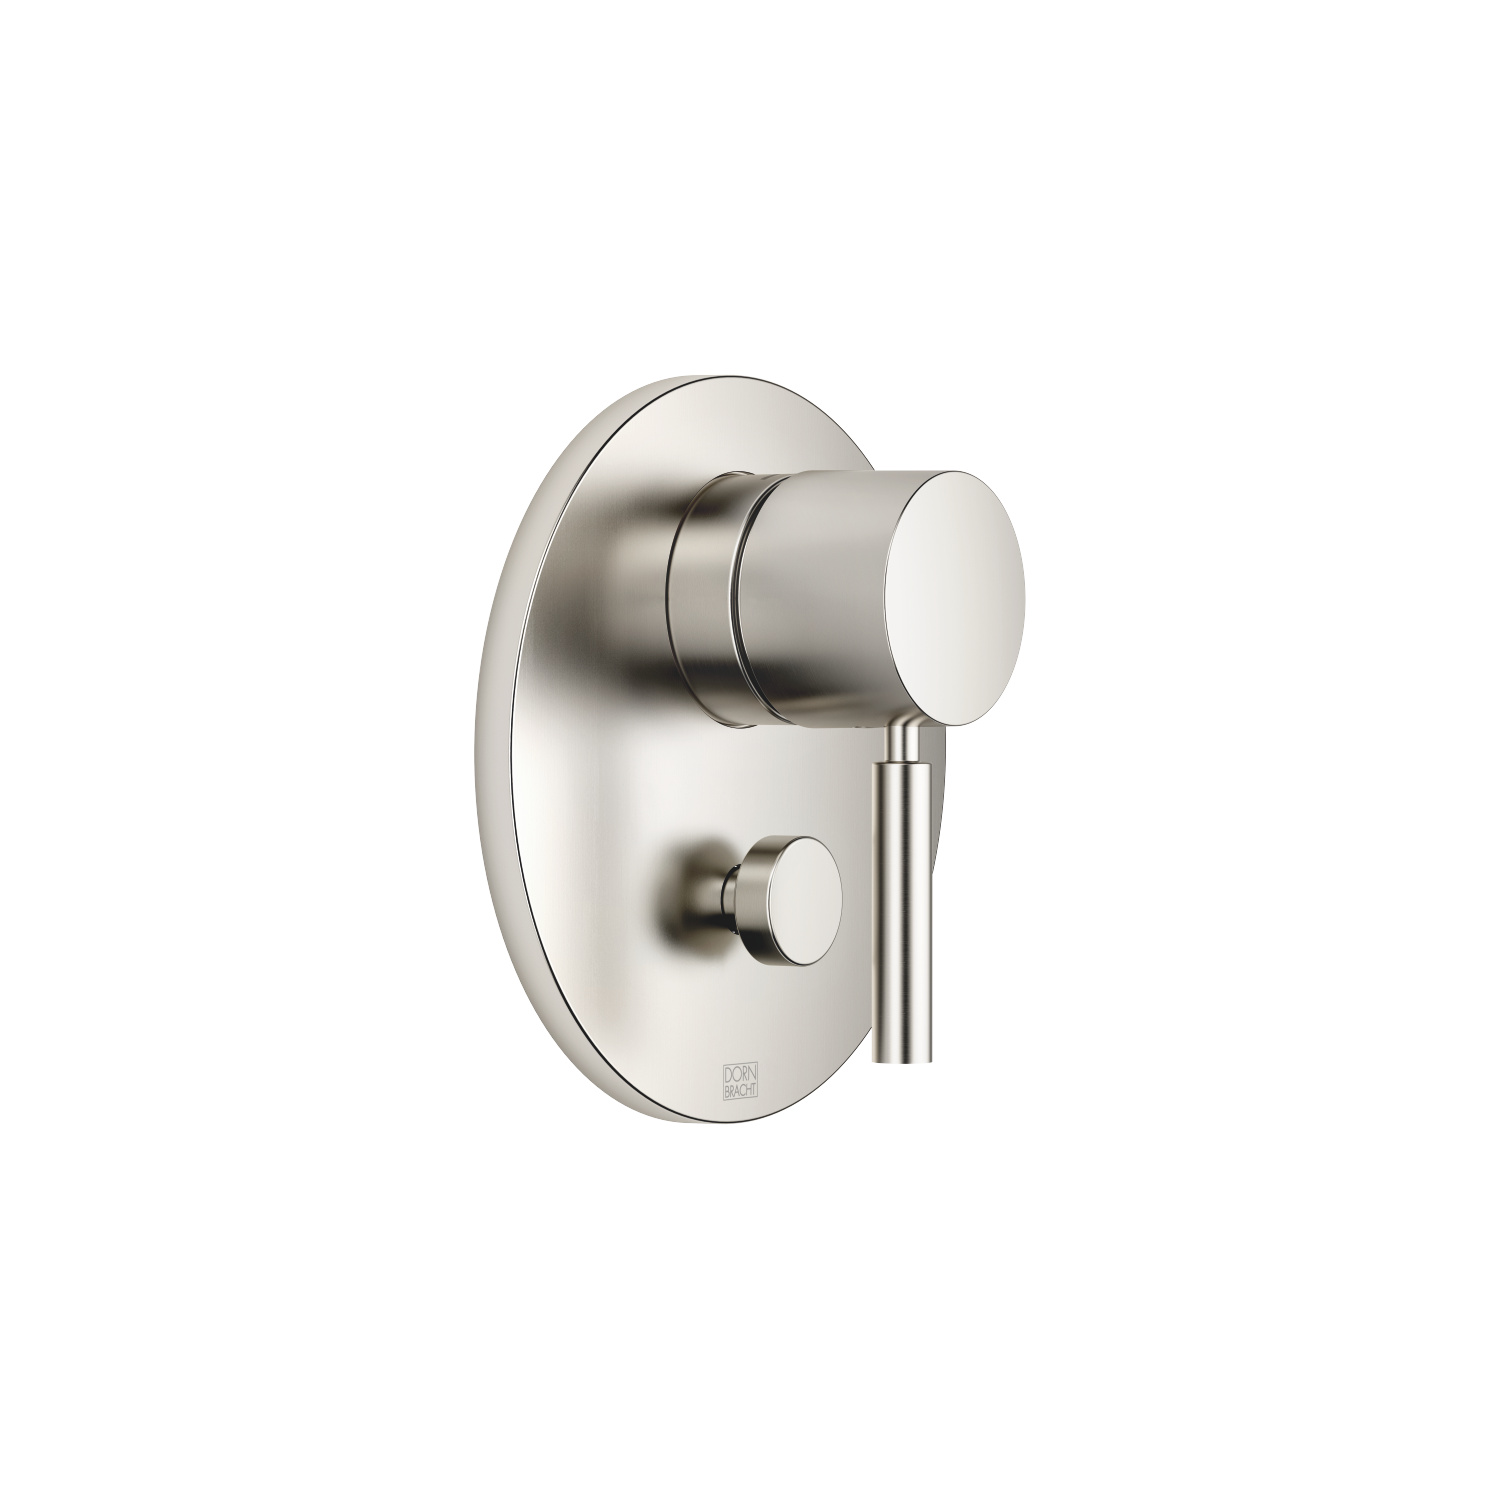 Concealed single-lever mixer with diverter - platinum matt - 36 120 660-06